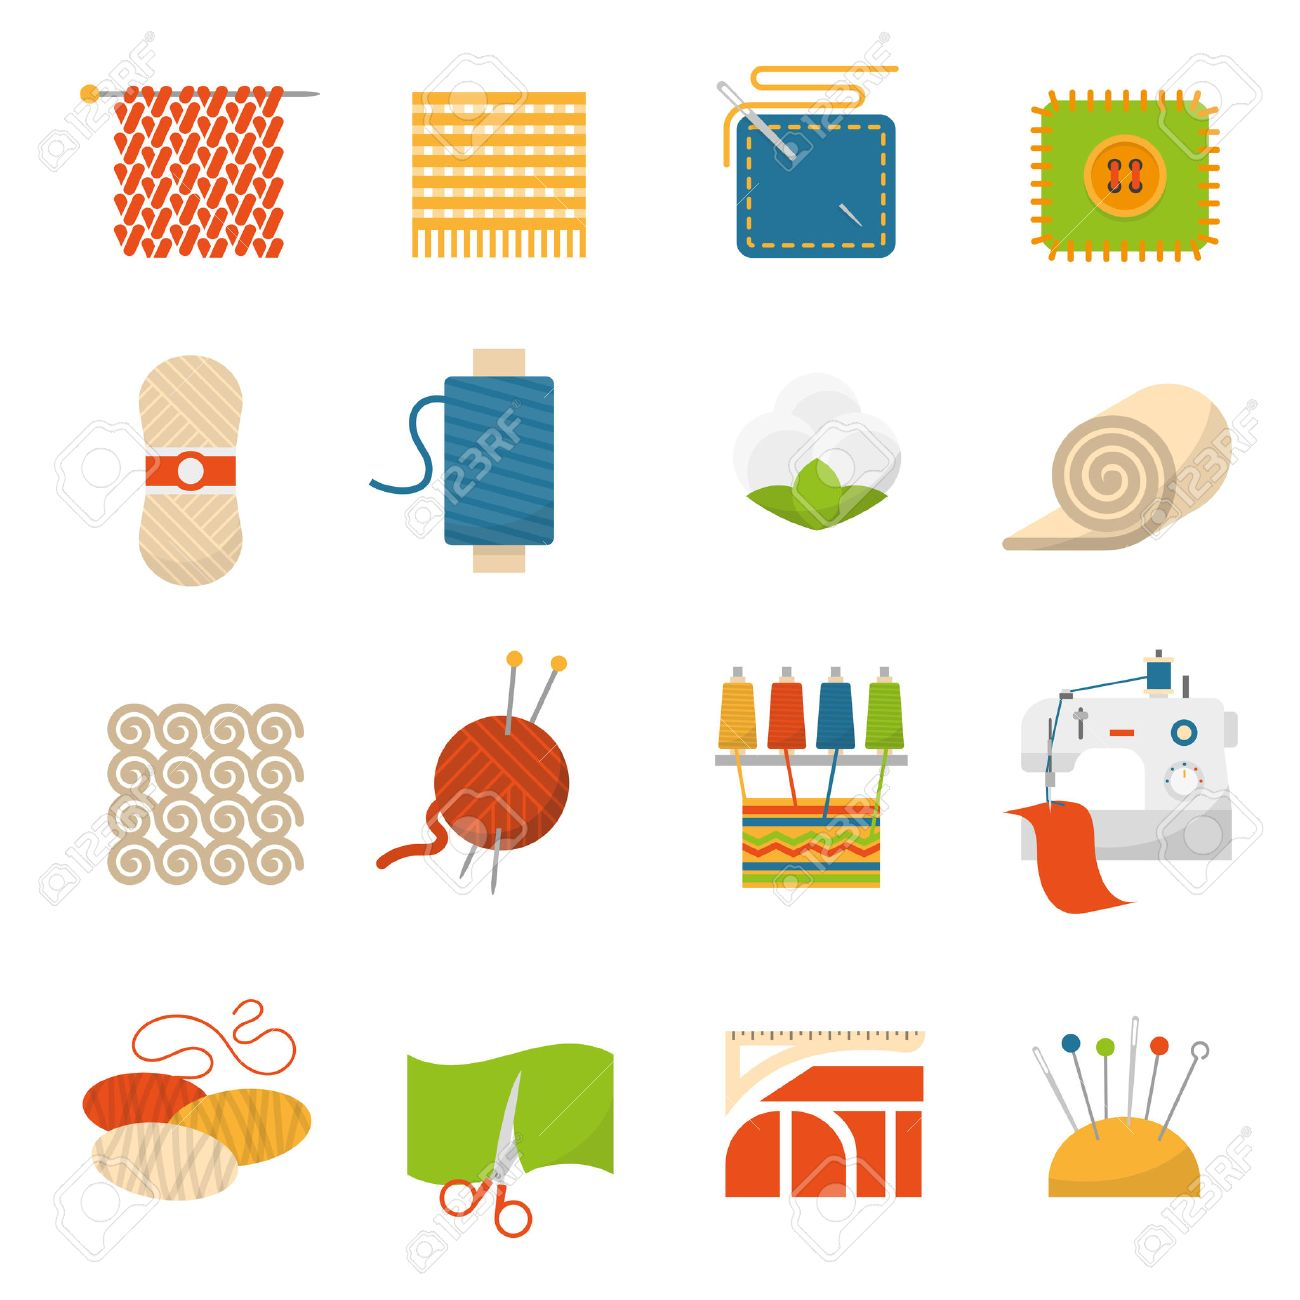 Textile industry flat icons set with clothing manufacture symbols textile industry flat icons set with clothing manufacture symbols isolated vector illustration stock vector 49539487 biocorpaavc Gallery